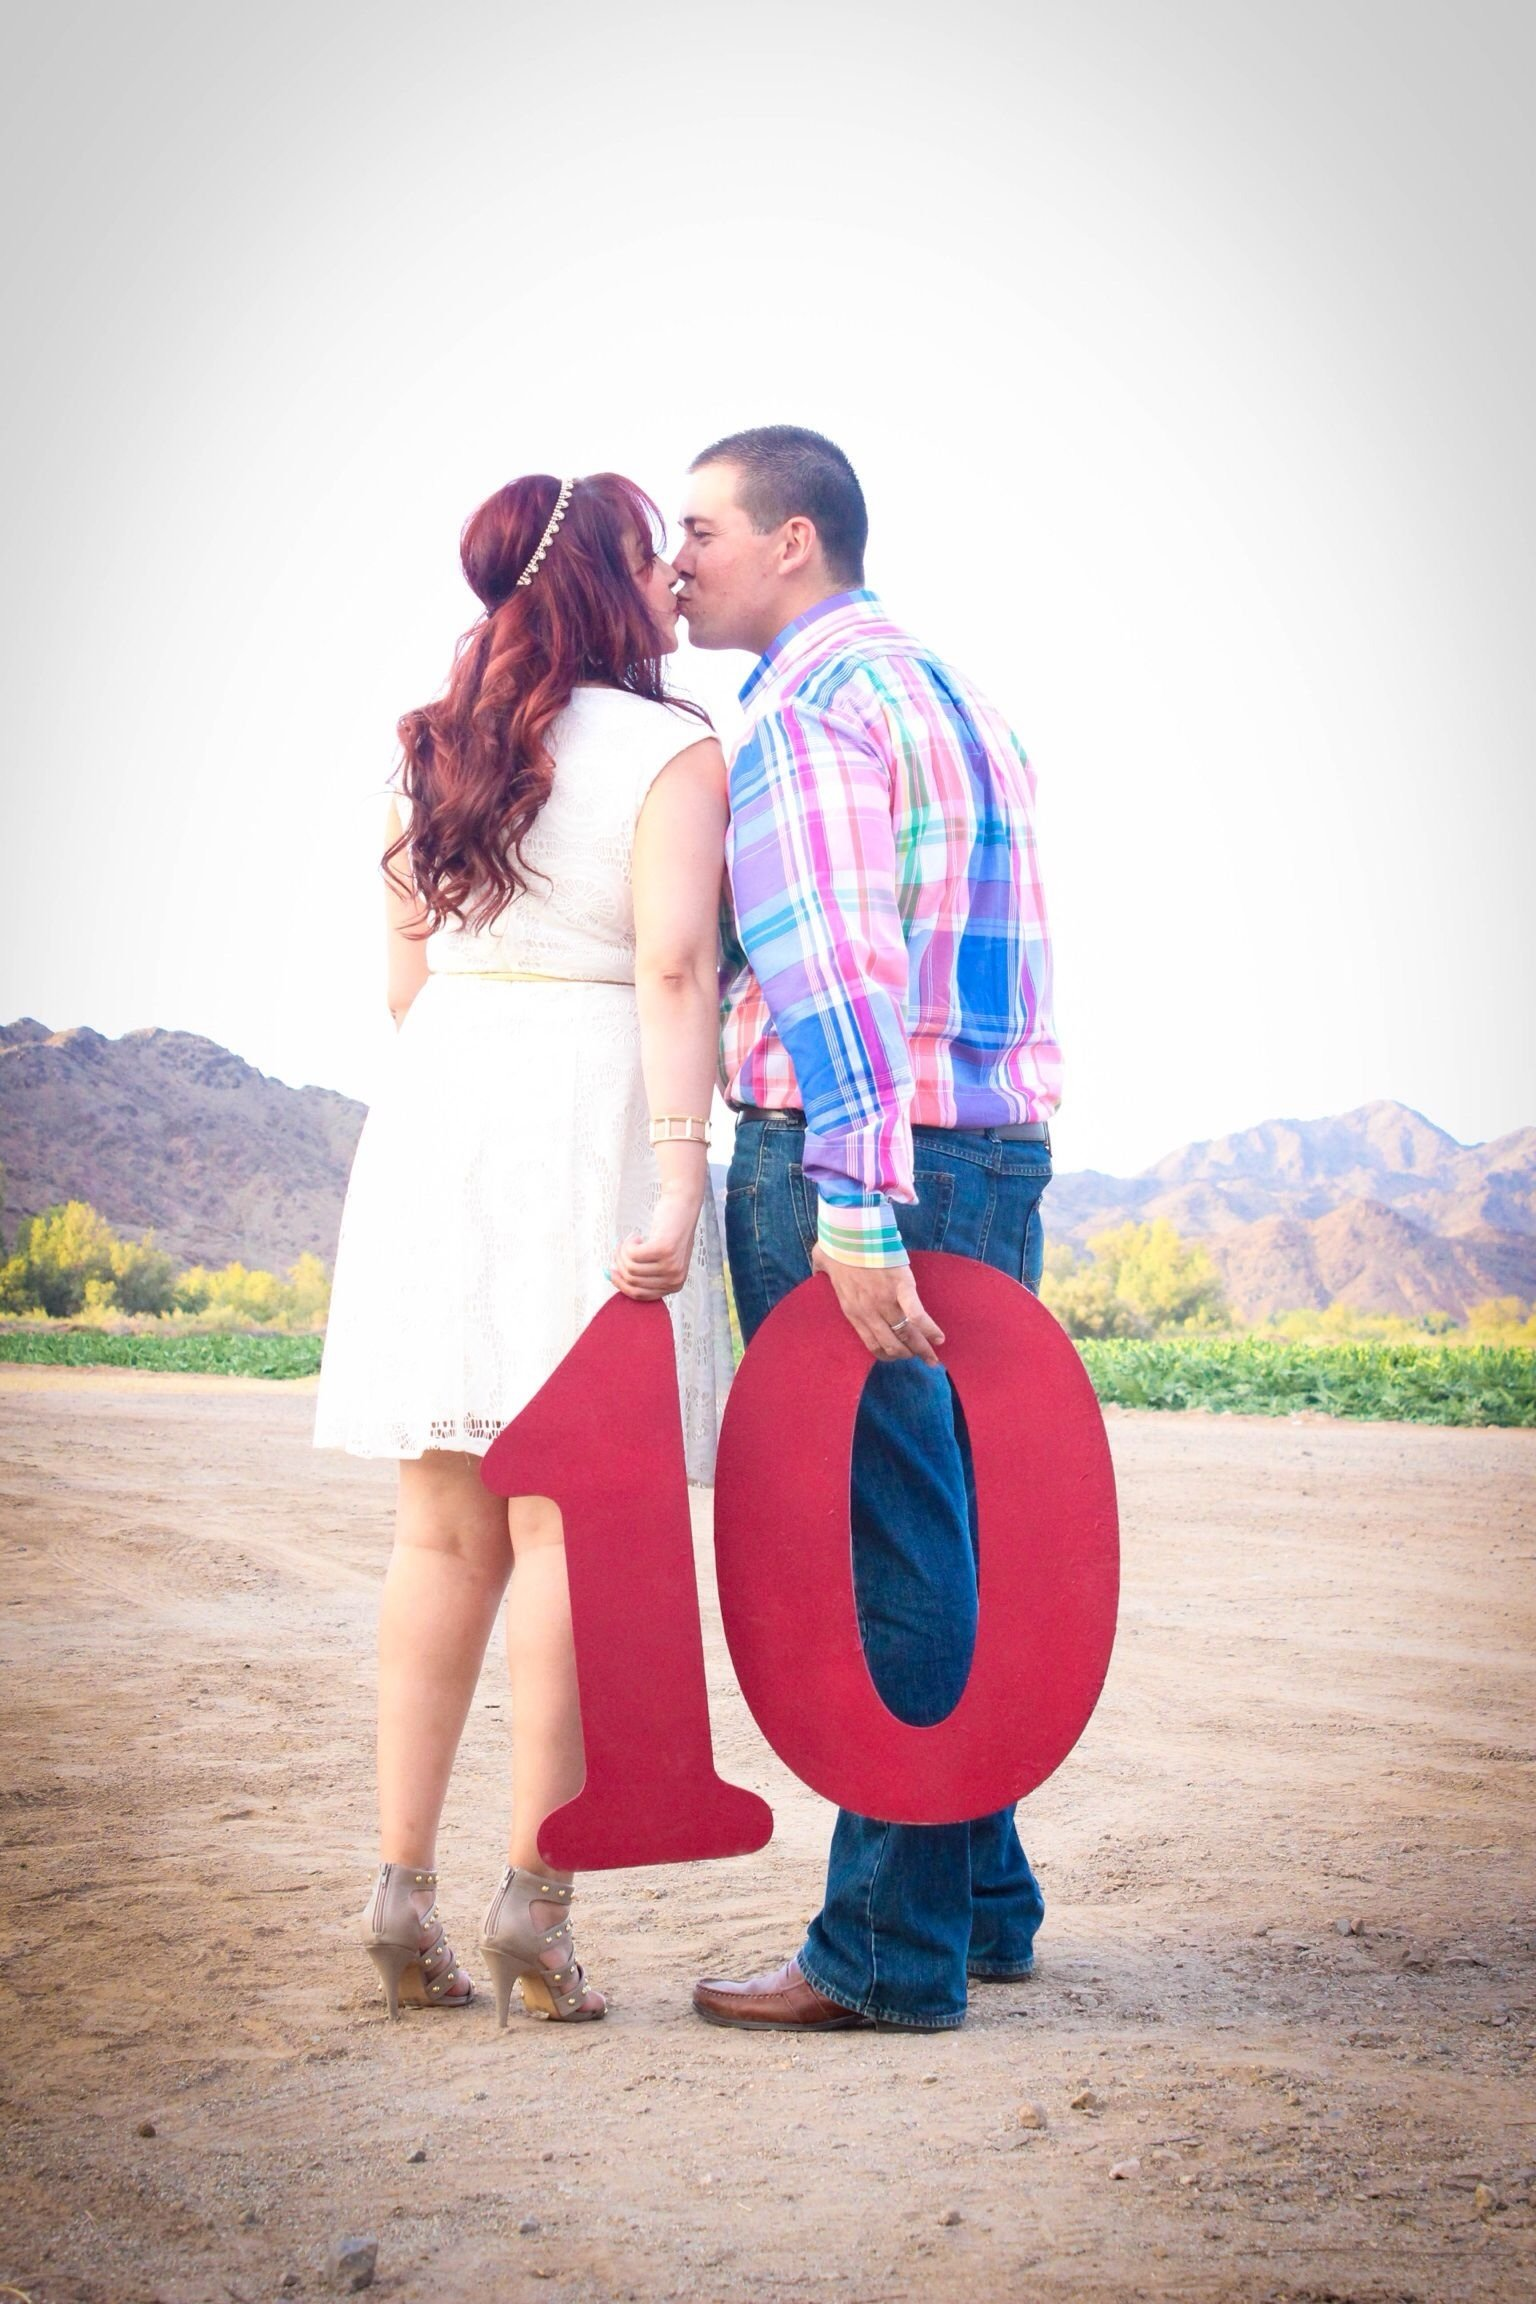 10 Most Popular 10 Year Vow Renewal Ideas 10 year vow renewal photos 10 year vow renewal pinterest 10 2020